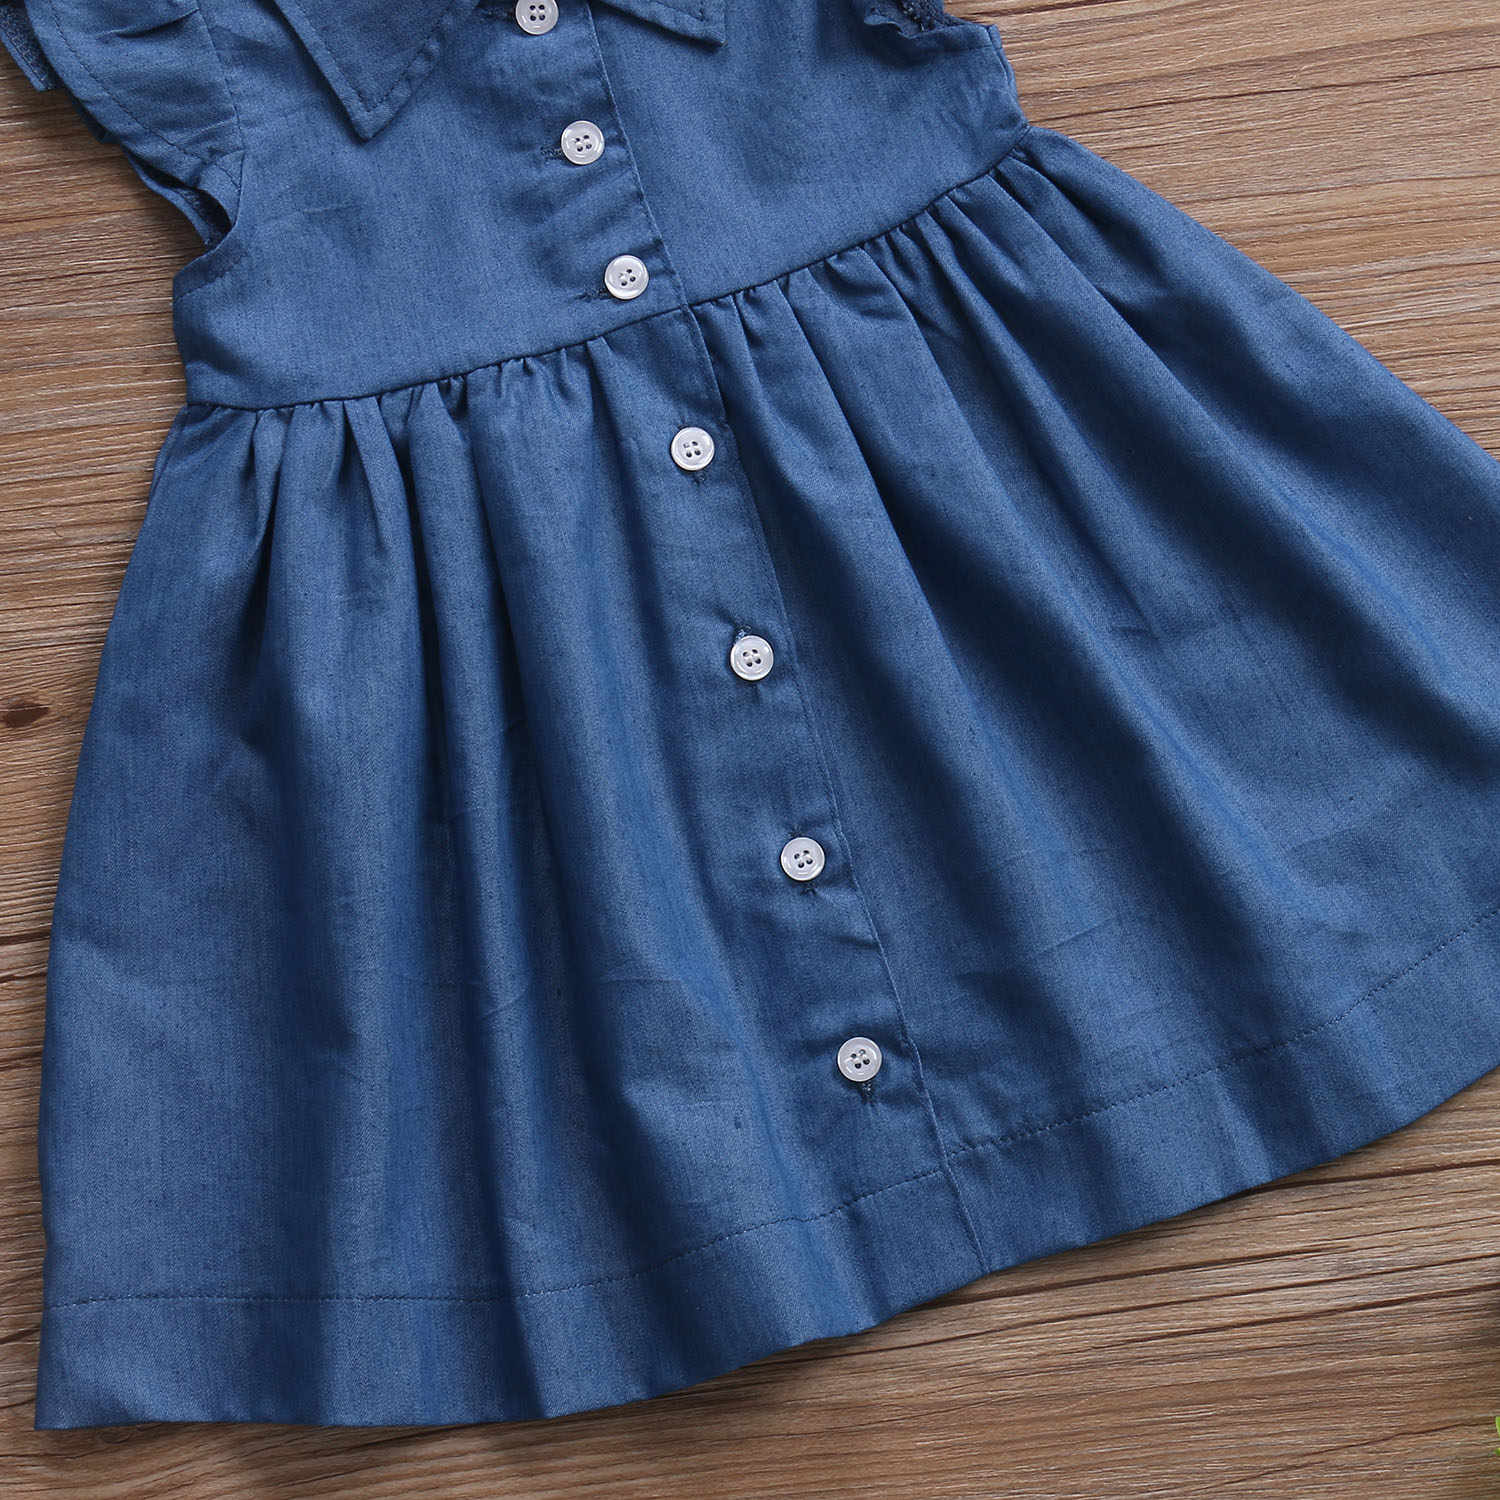 be63f1711 Detail Feedback Questions about baby girl denim dress Toddler Baby ...